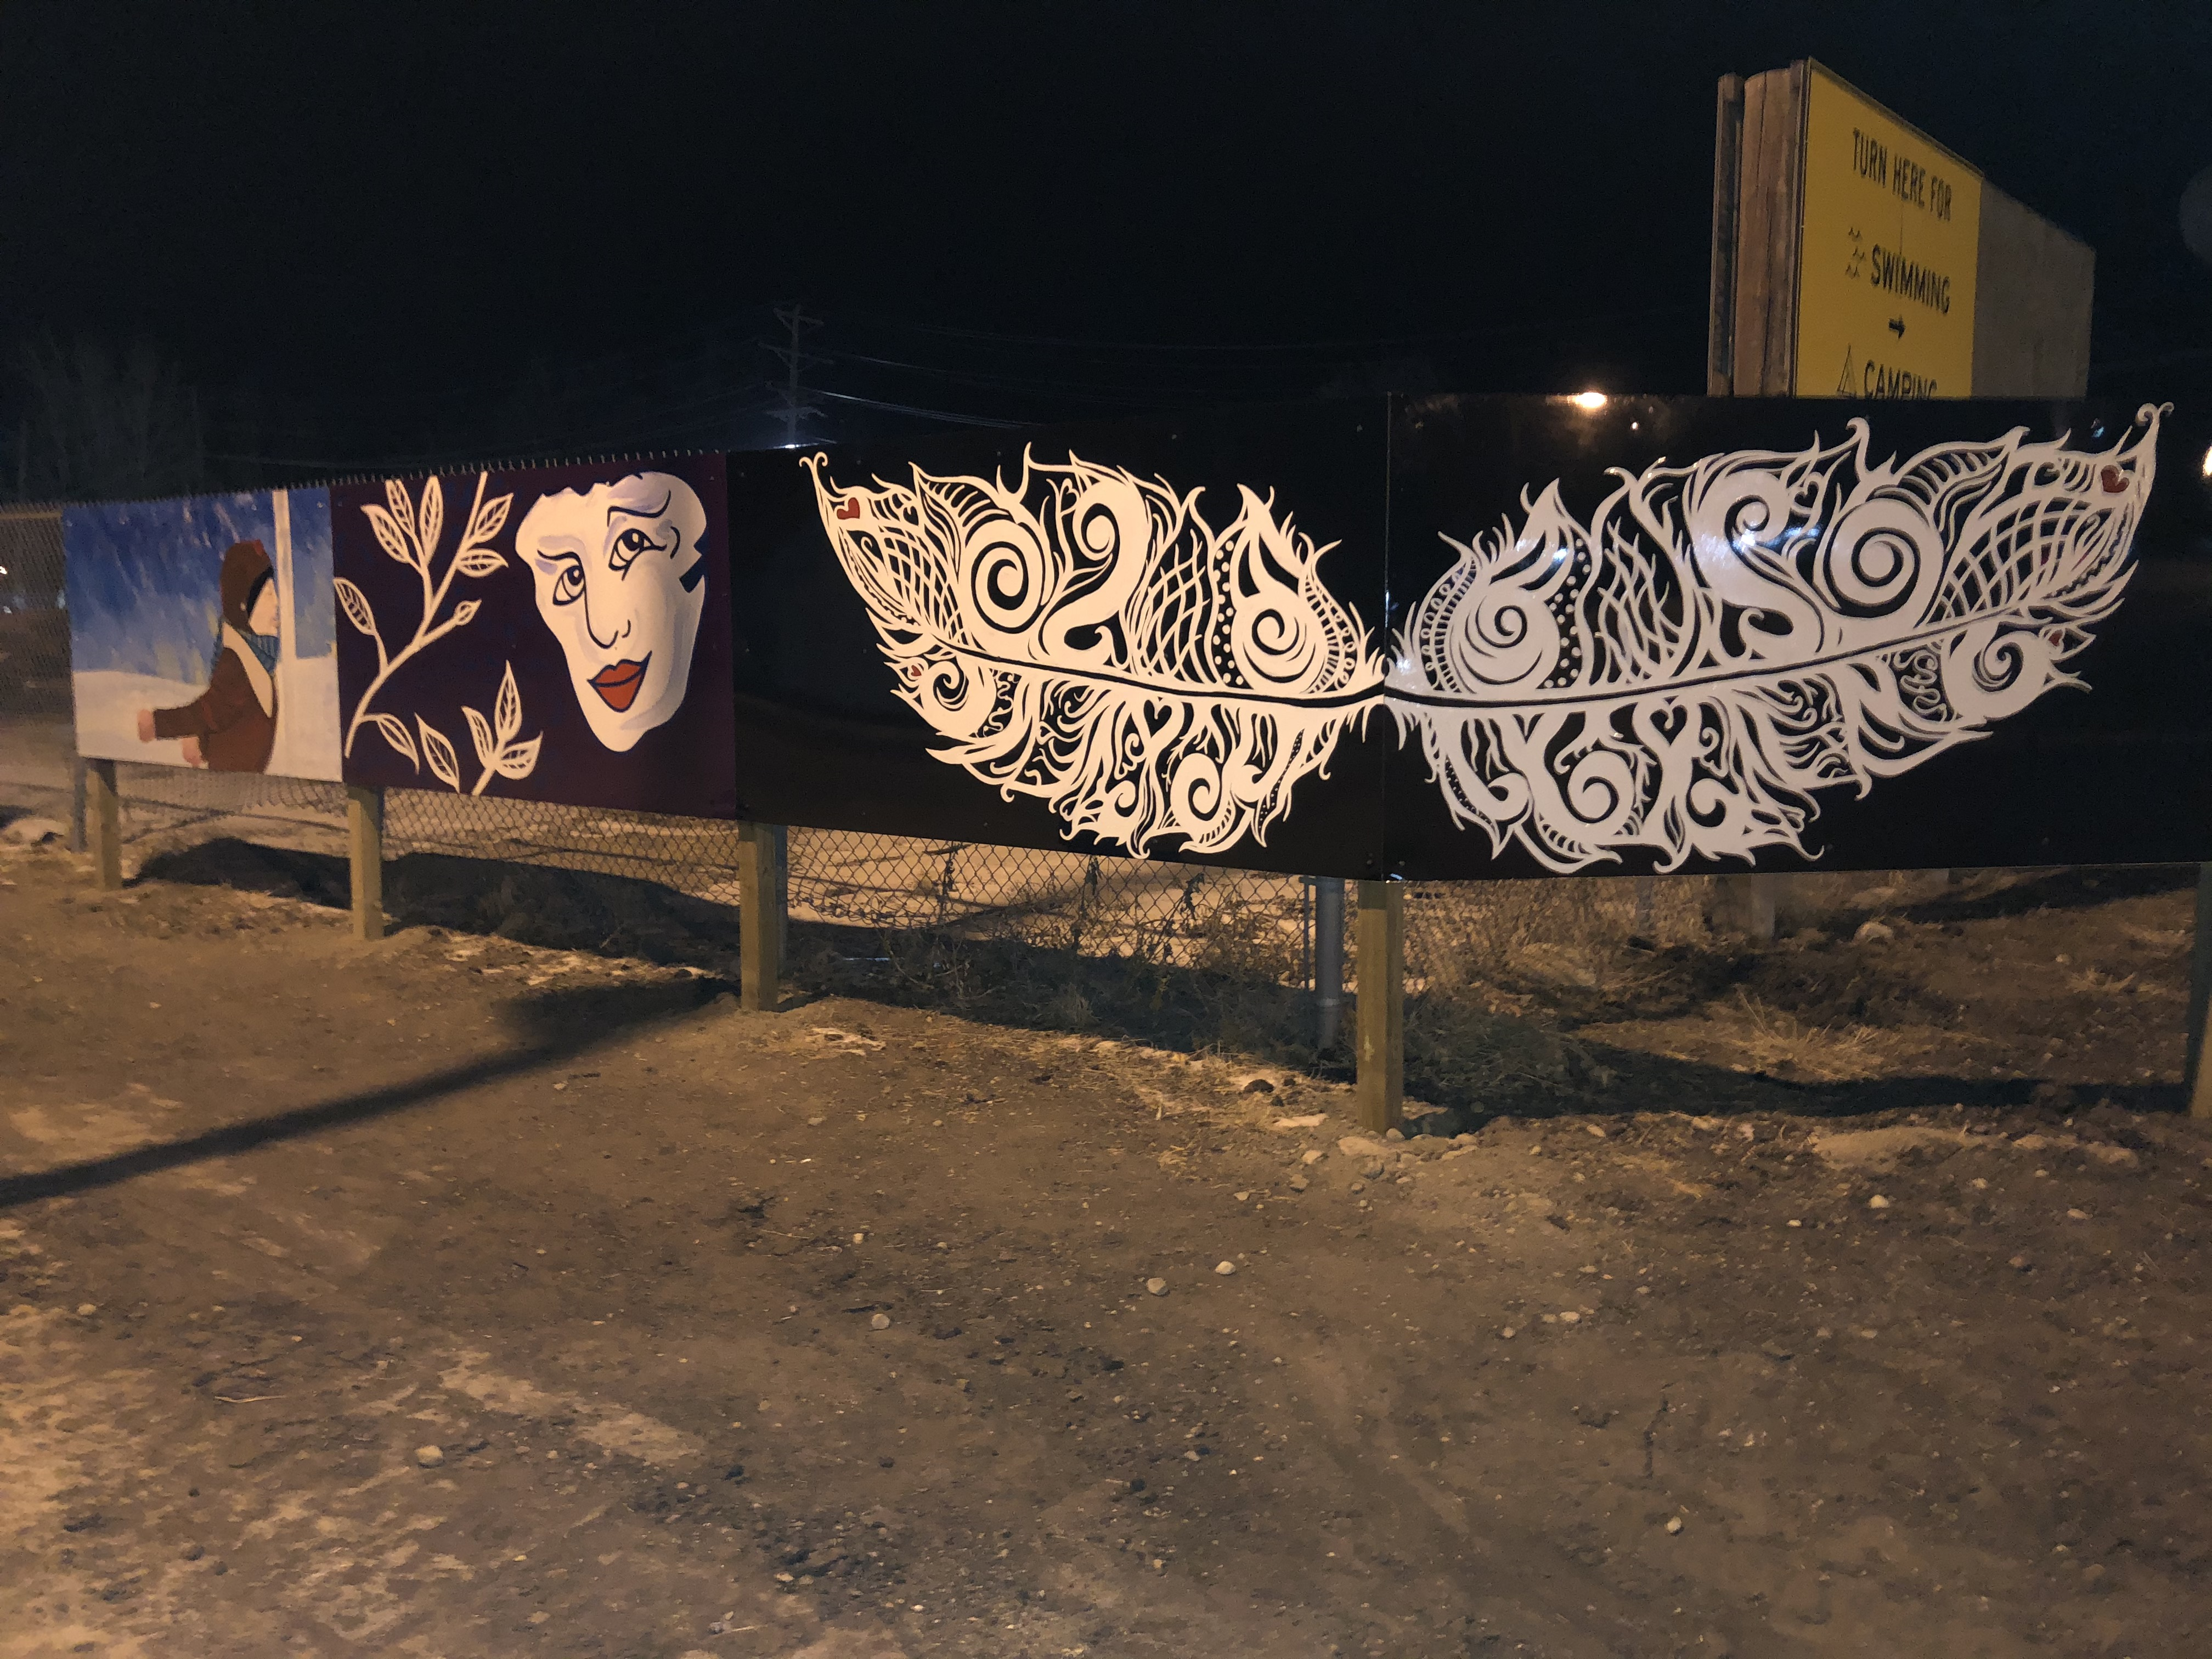 Caption: A portion of the Connie Nelson mural in Hallock, MN